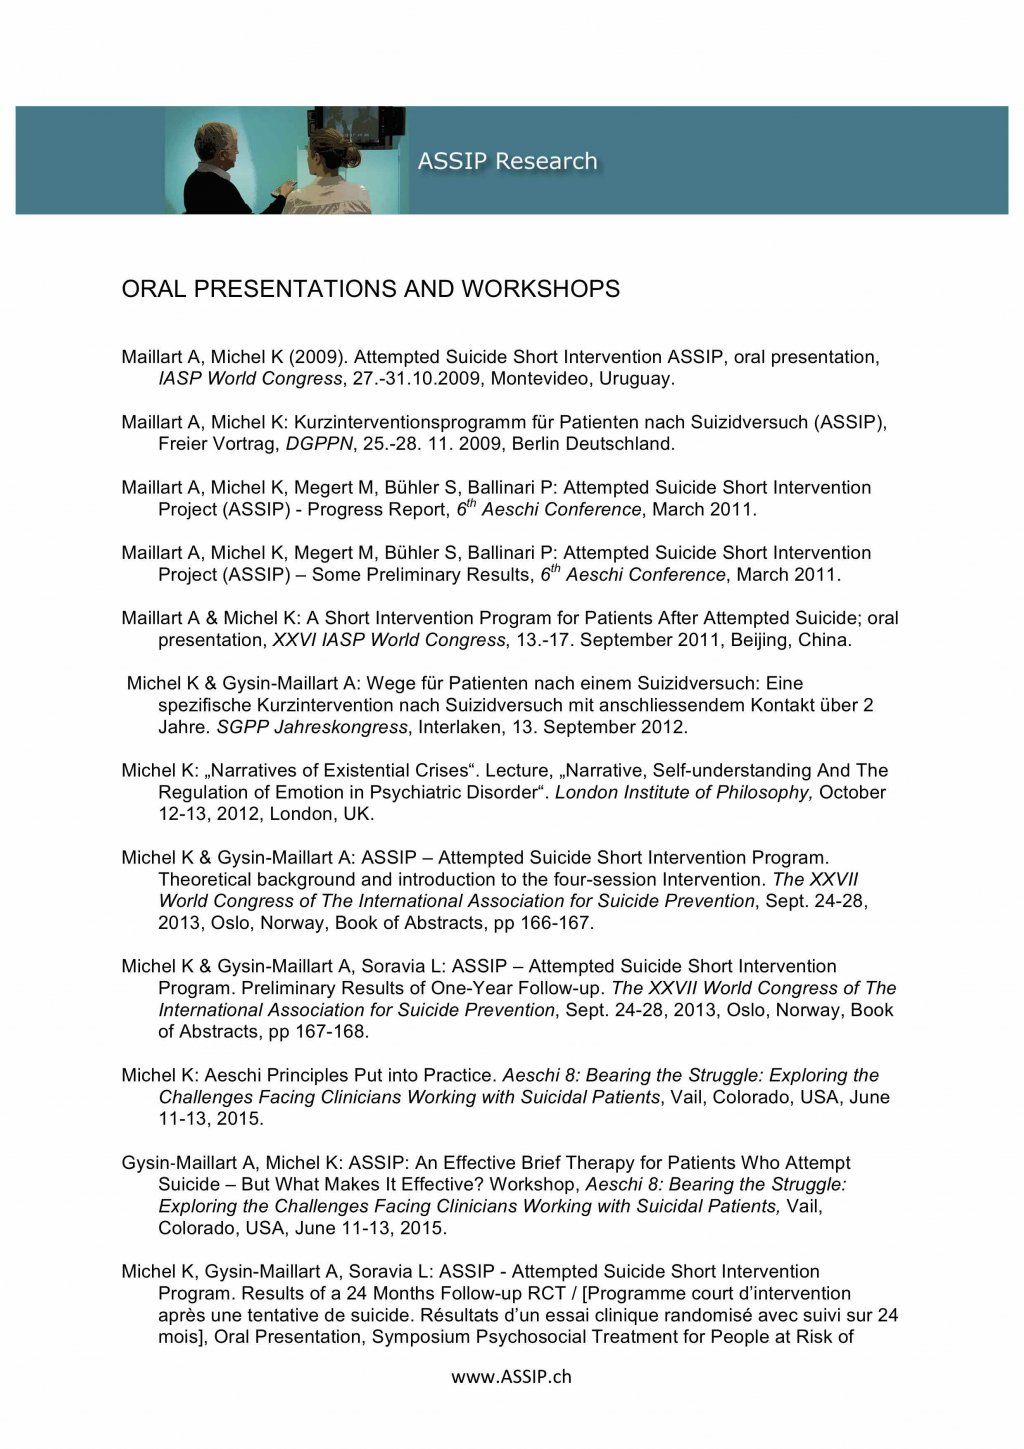 List Oral Presentations and Workshops